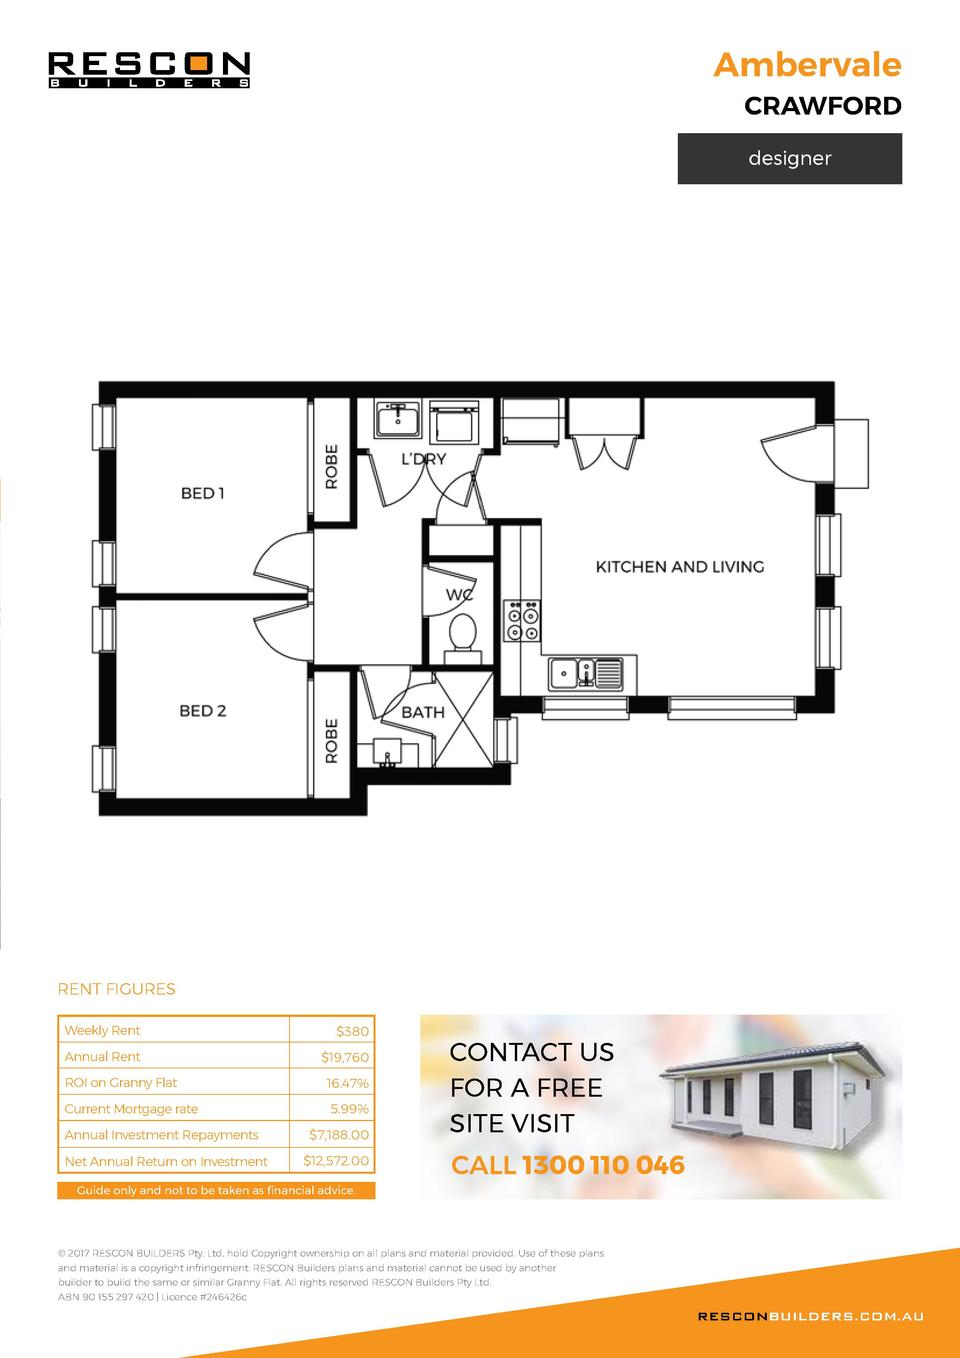 Ambervale  CRAWFORD designer  RENT FIGURES Weekly Rent   380  Annual Rent   19,760  ROI on Granny Flat  16.47   Current Mo...